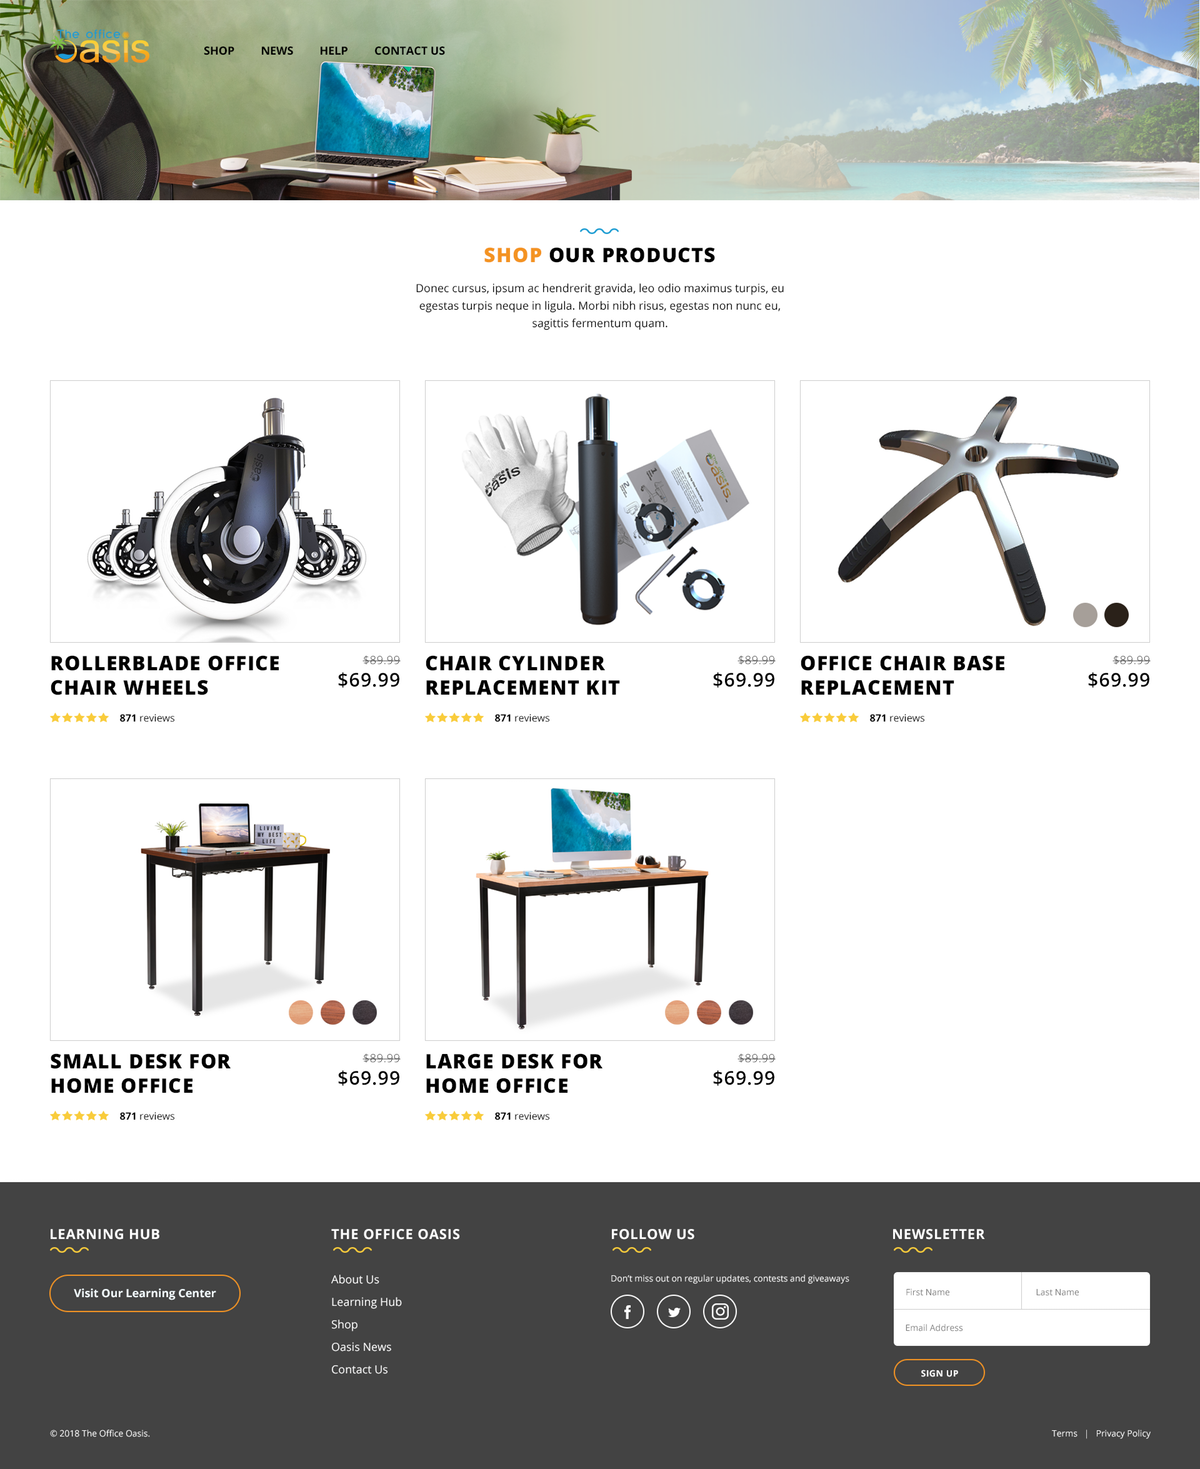 Product Detail Page Design